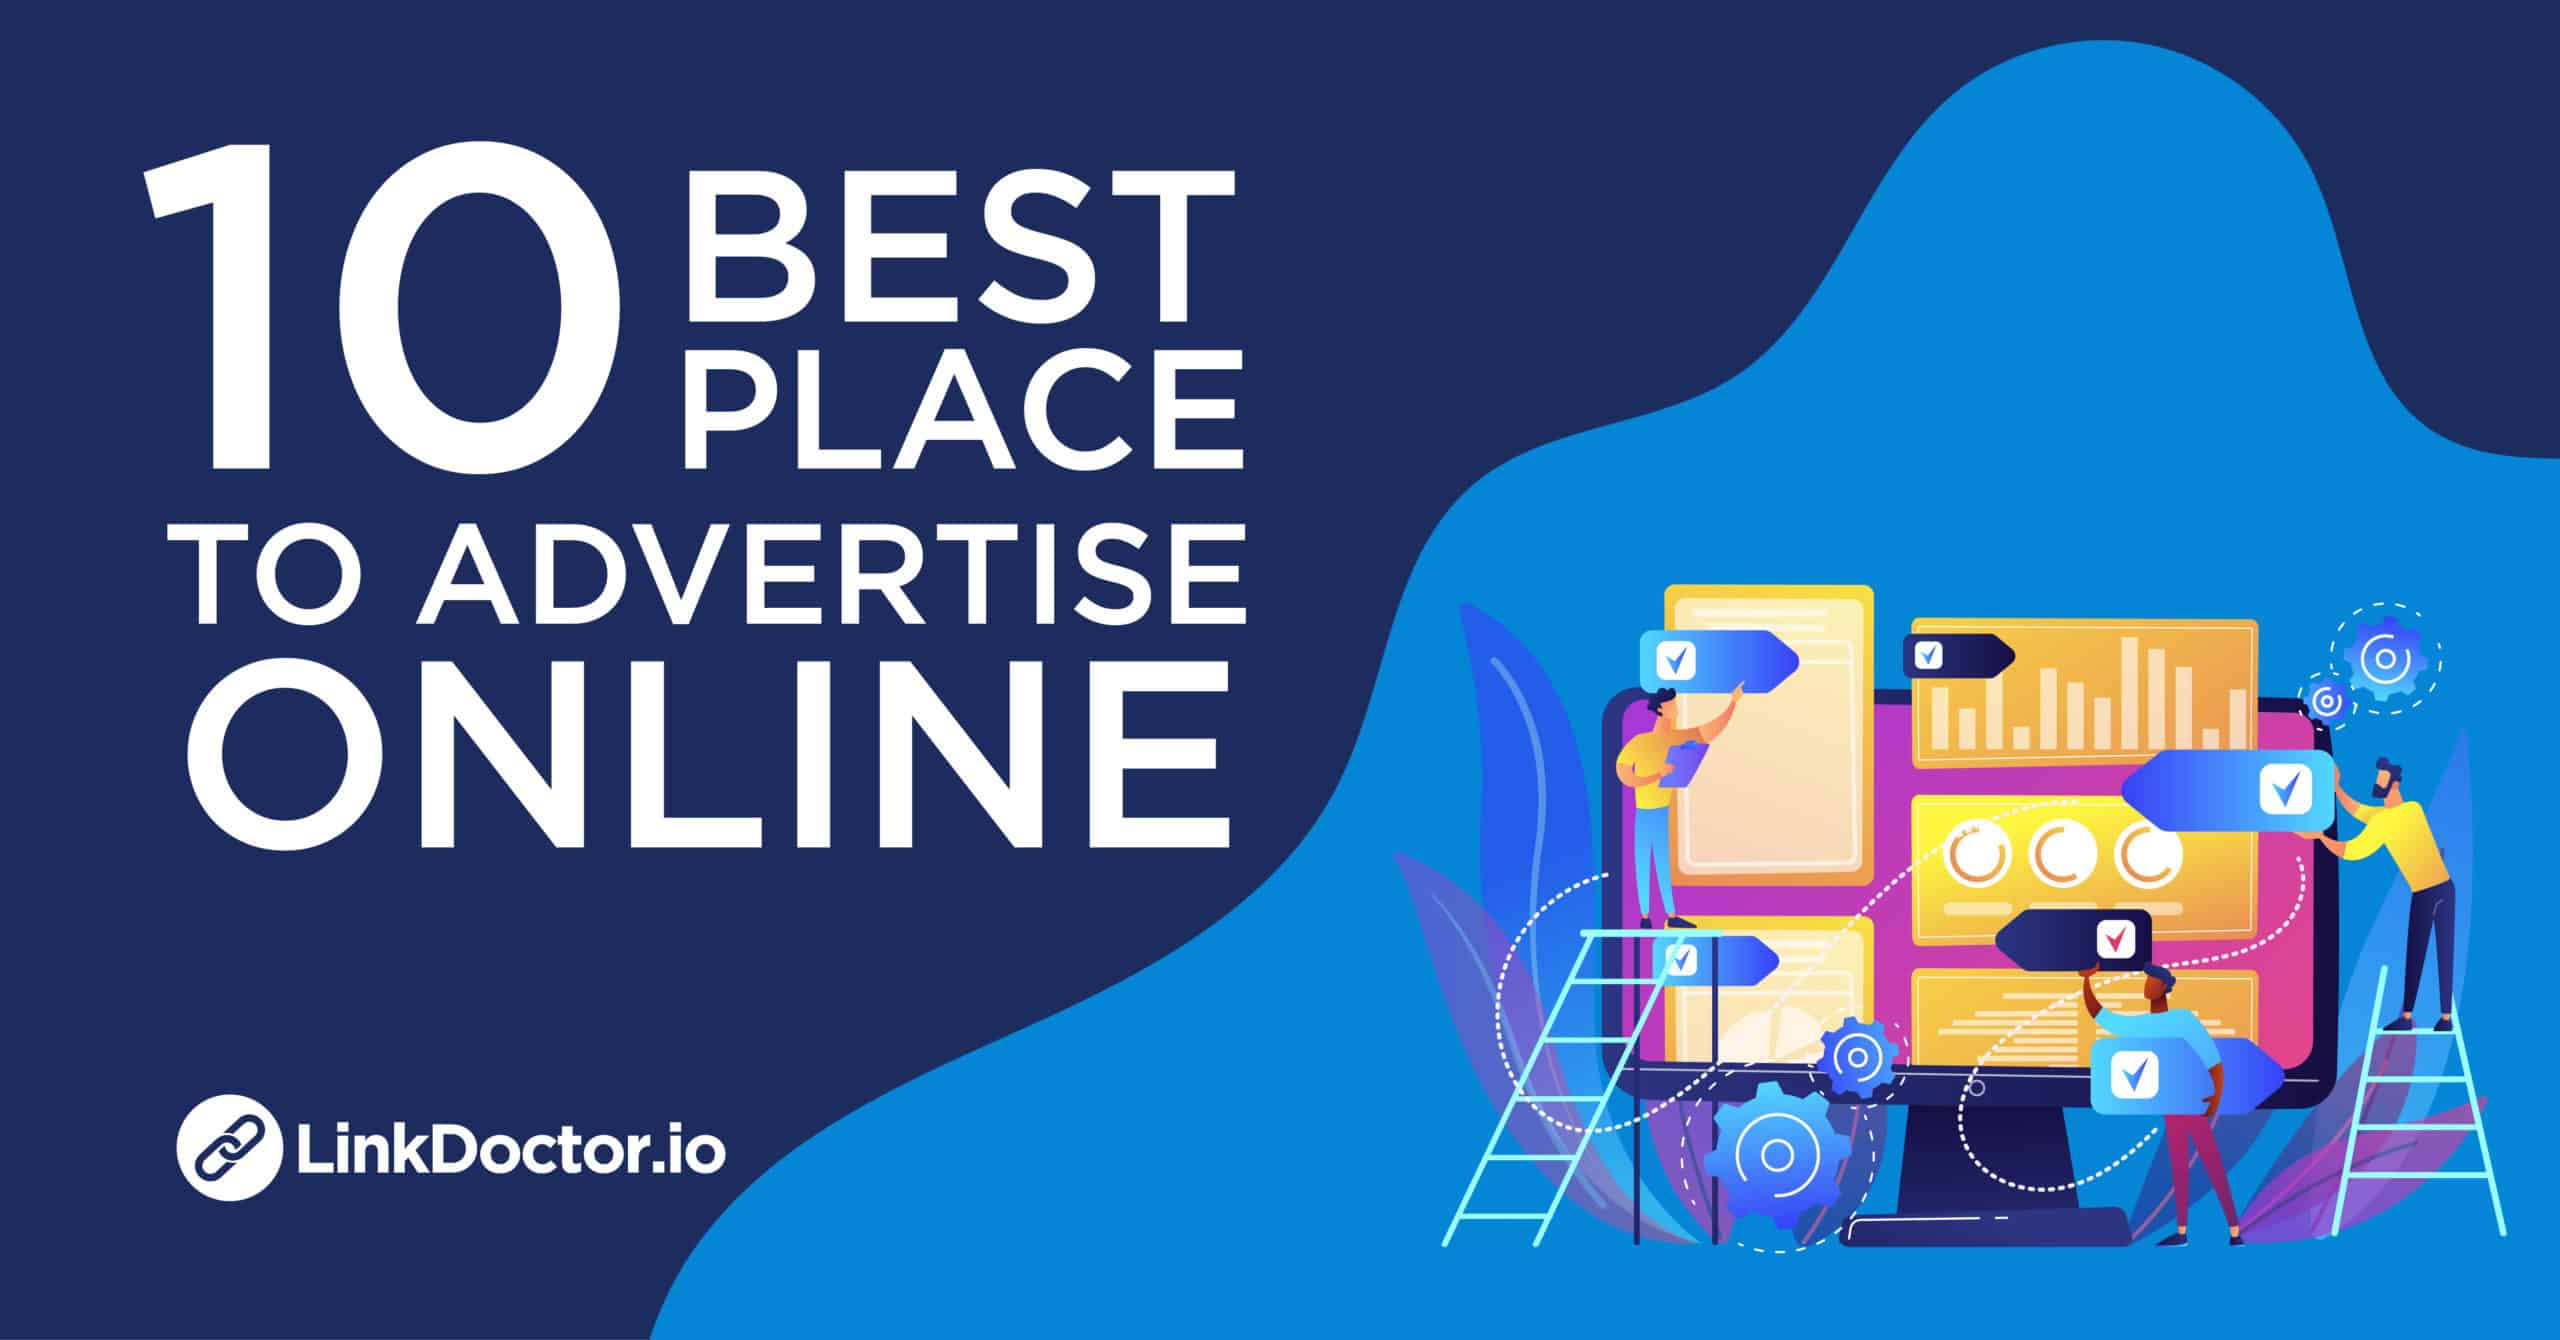 Best Place to advertise online